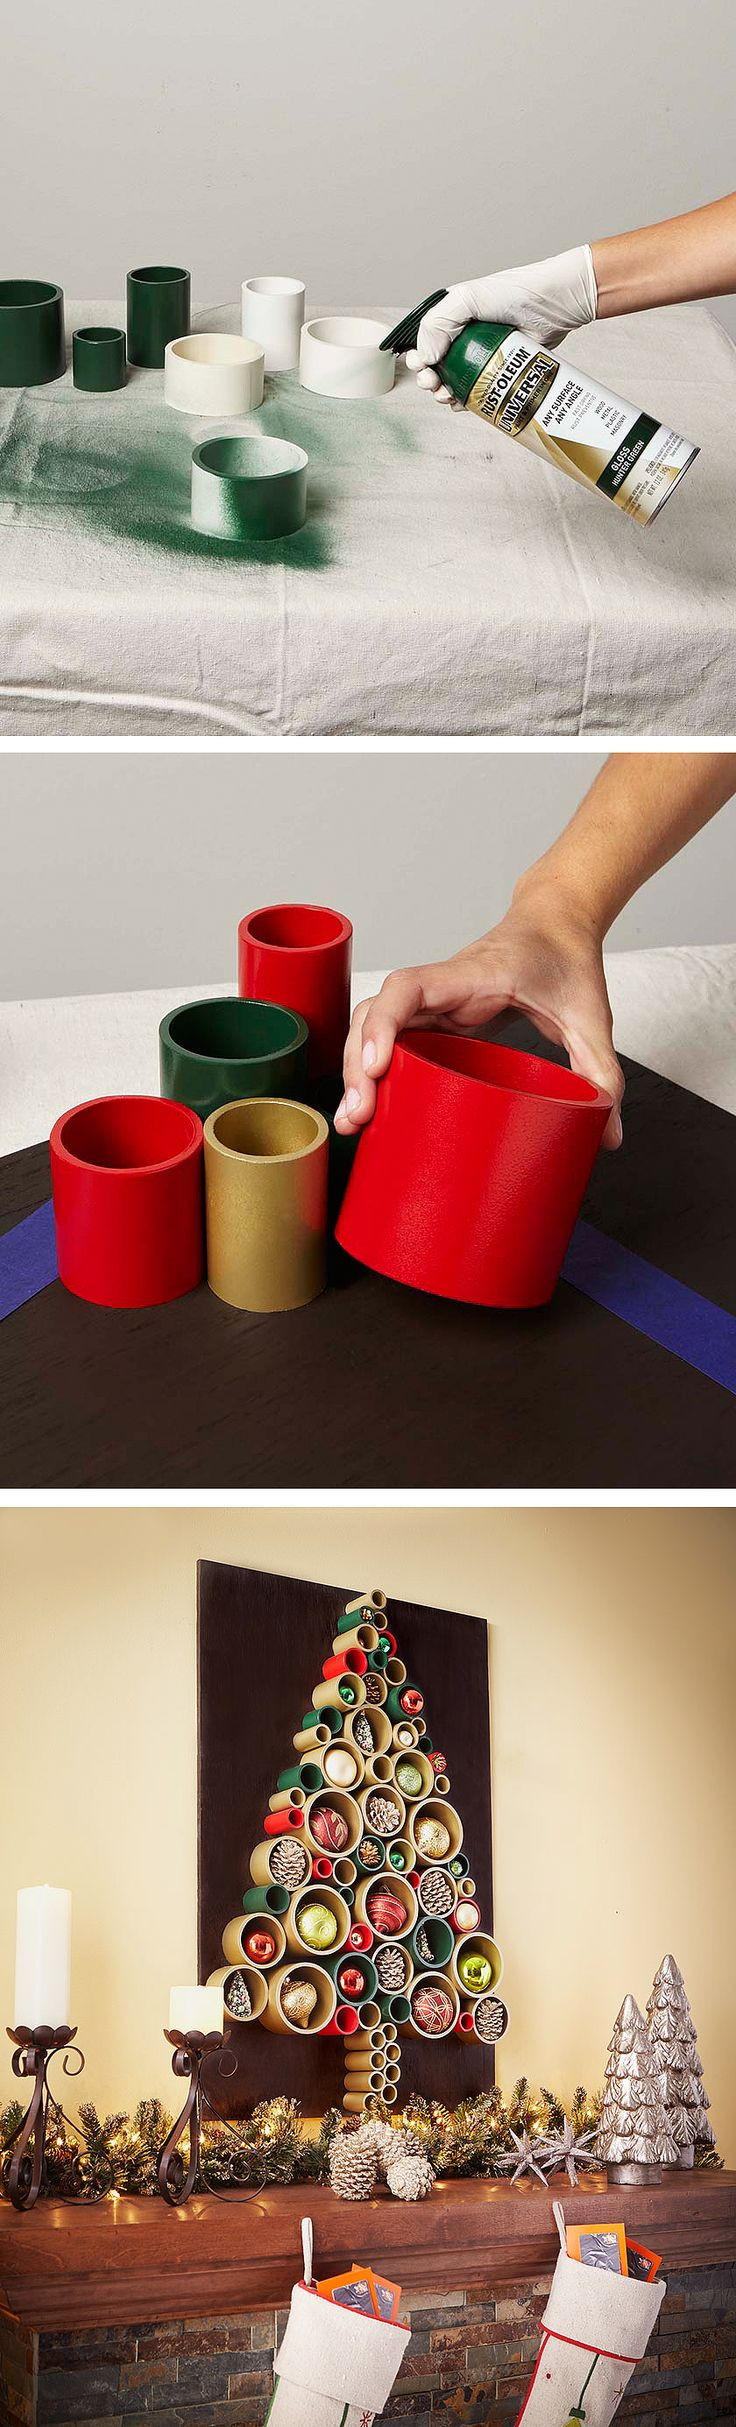 Could also just be wal art   Here's a PVC pipe project for the holidays. It's a PVC pipe Christmas tree. This colorful wall hanging is a pretty simple DIY project you can complete in a weekend. Click through for the full tutorial.